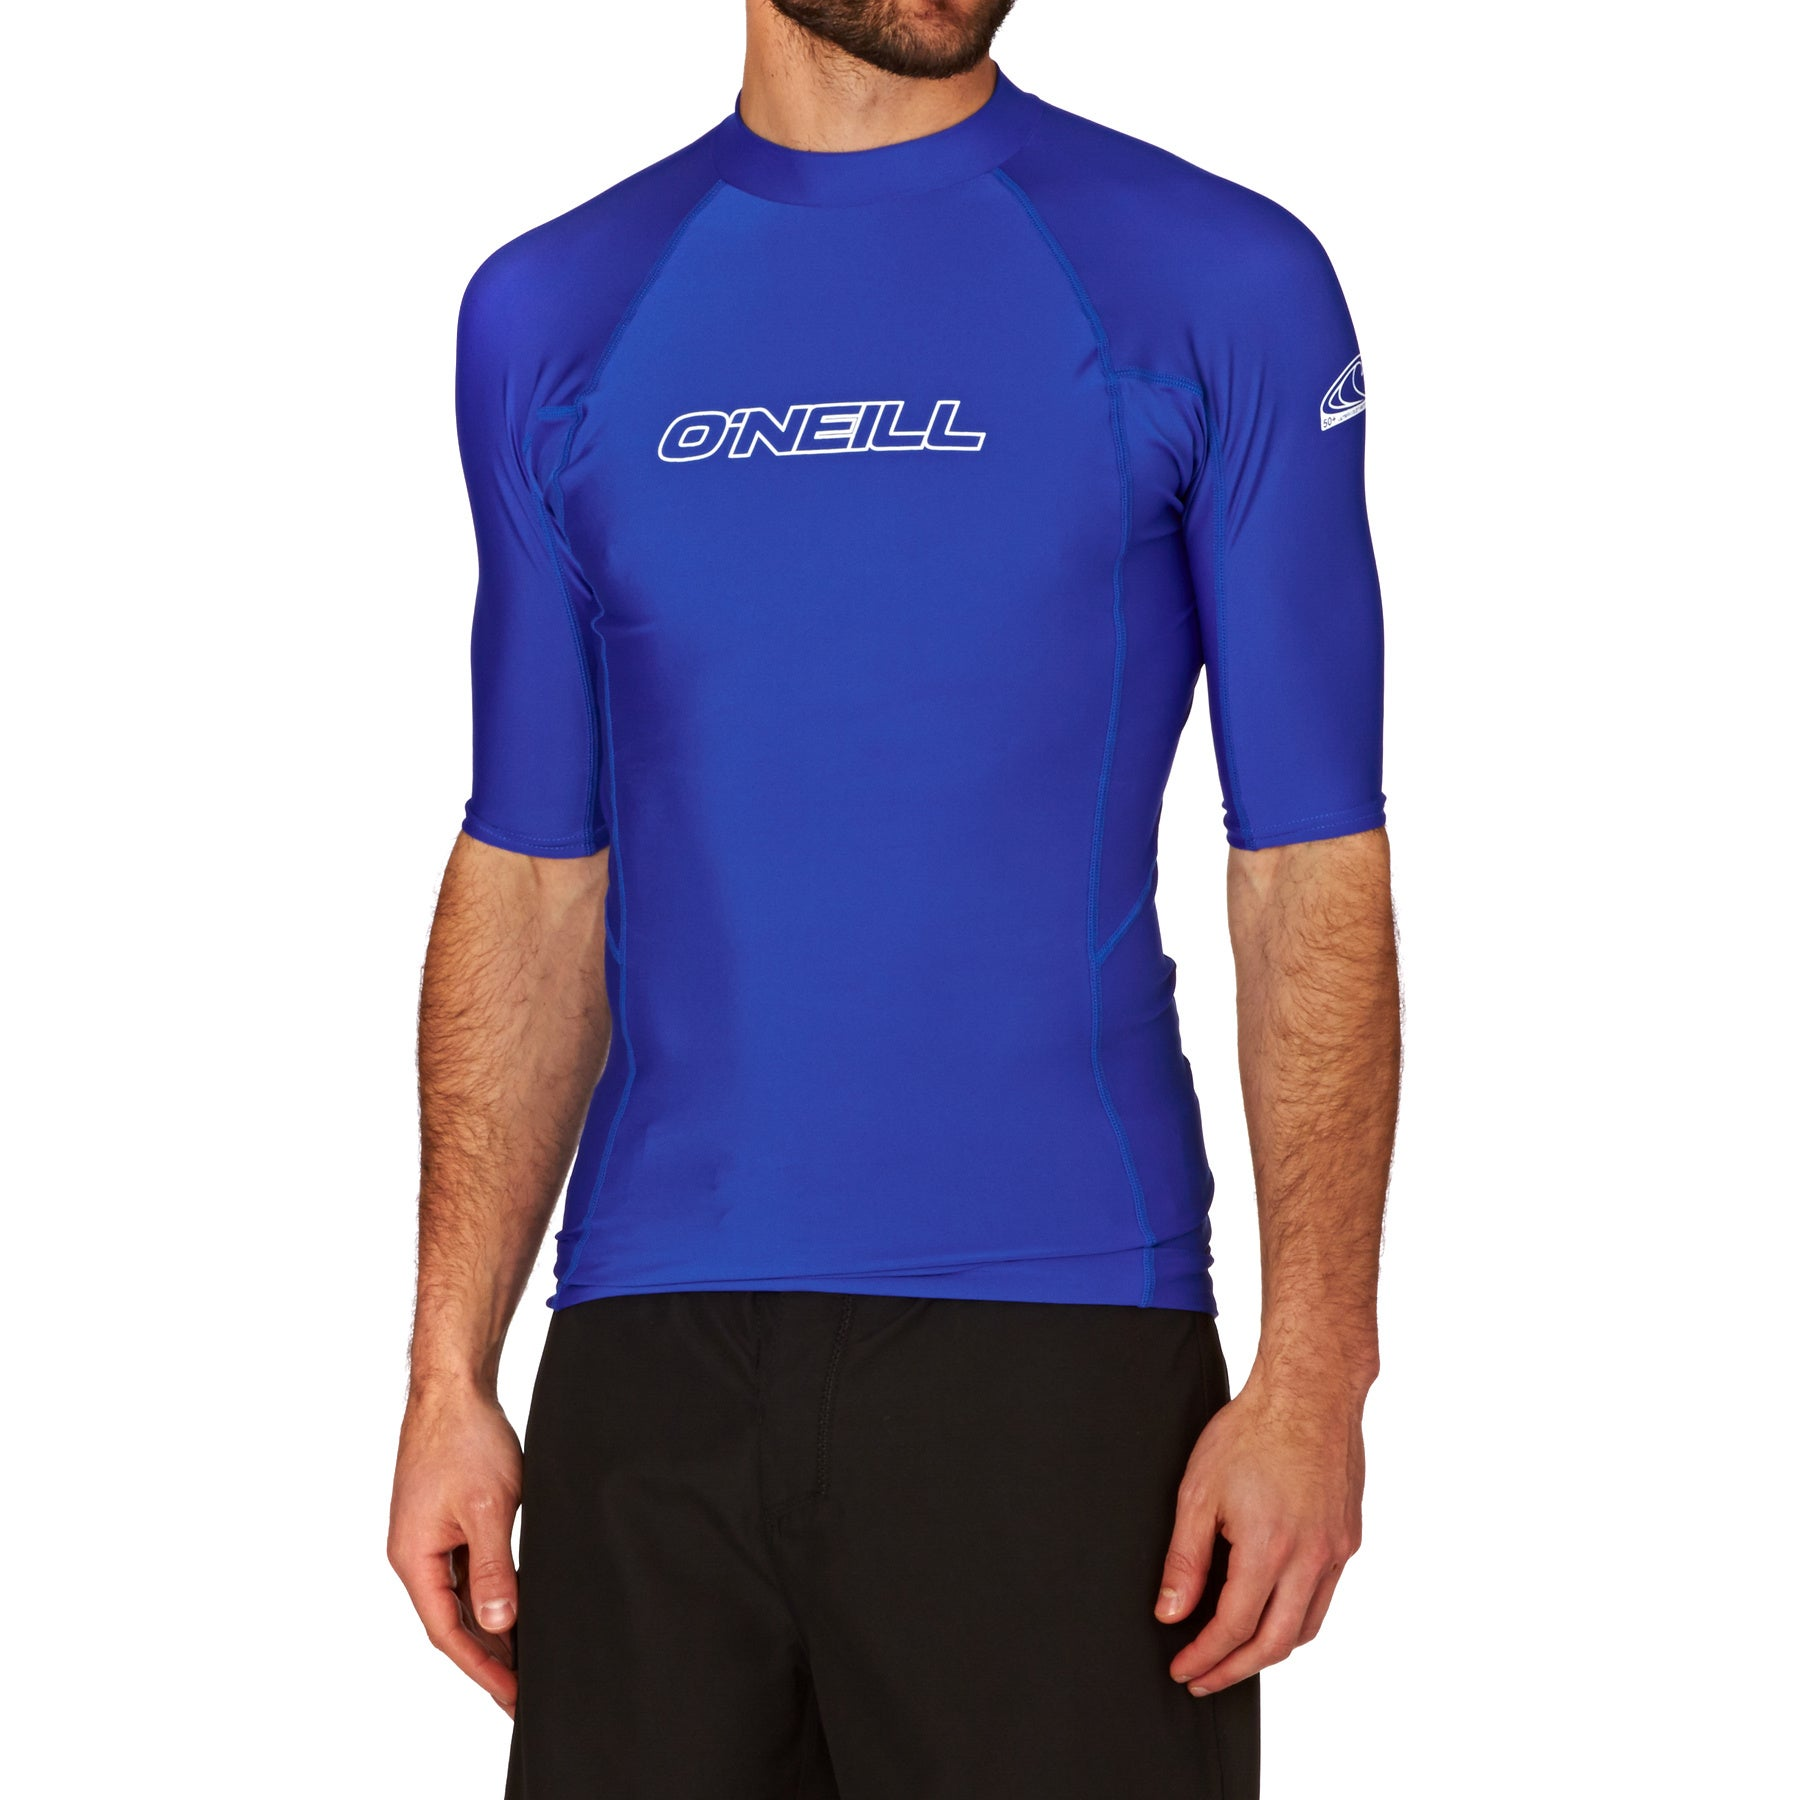 O Neill Basic Skins Short Sleeve Crew Mens Surf Gear Rash Vest - Pacific